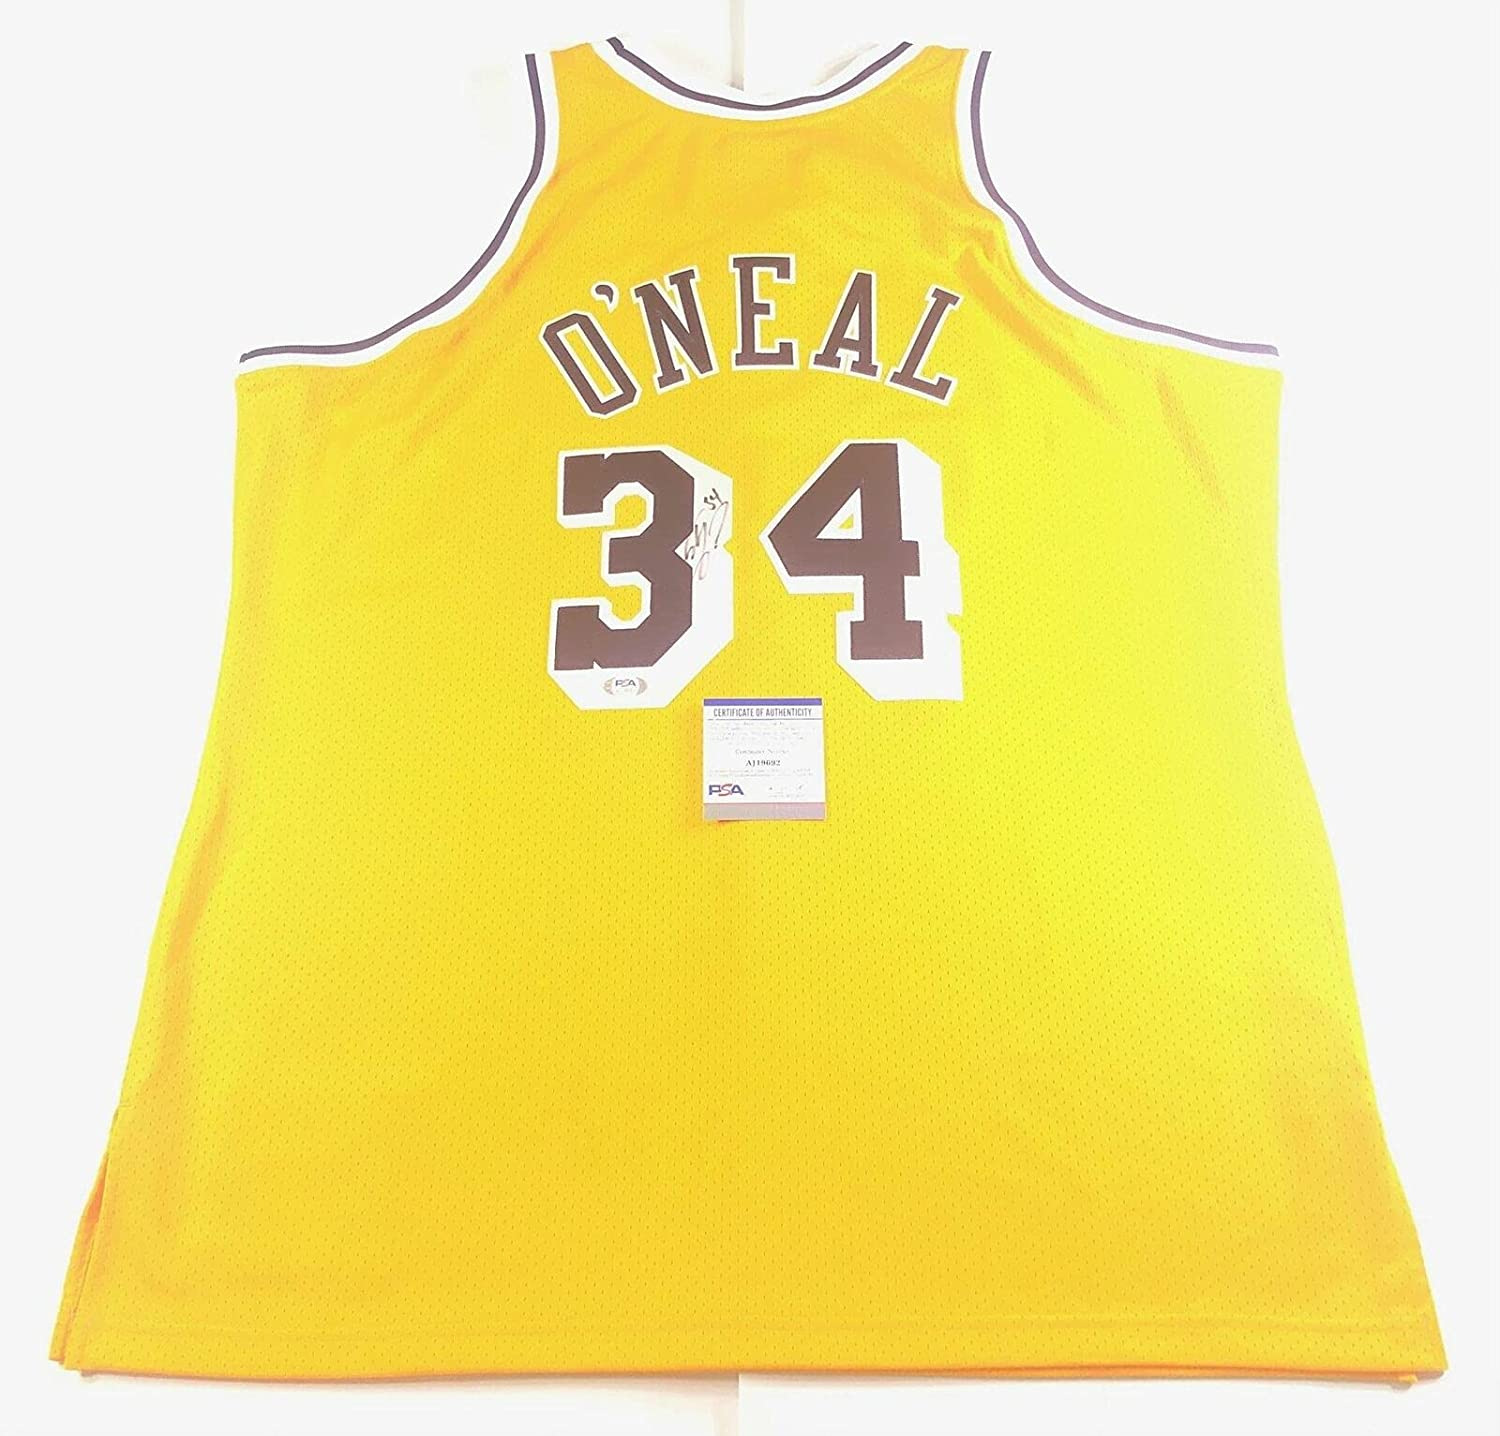 Shaquille O'Neal Signed Jersey PSA/DNA Los Angeles Lakers ...